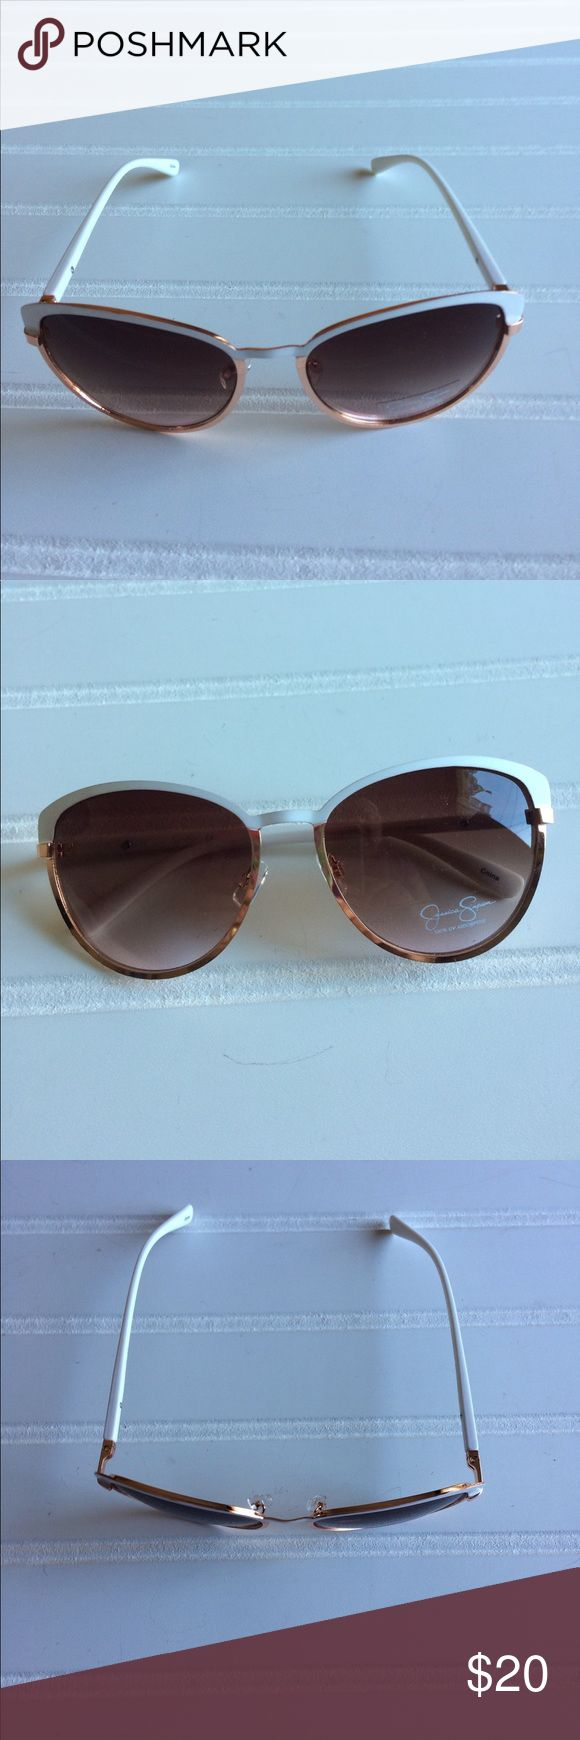 🆕 Jessica Simpson White and Gold Sunglasses Jessica Simpson white and gold Sunglasses.   There are Gradient lenses. Top of the lenses are pink. Lower is clear. Could not get a picture reflecting the pink color.   No case.   100% UV Protection   Offers welcome Jessica Simpson Accessories Sunglasses